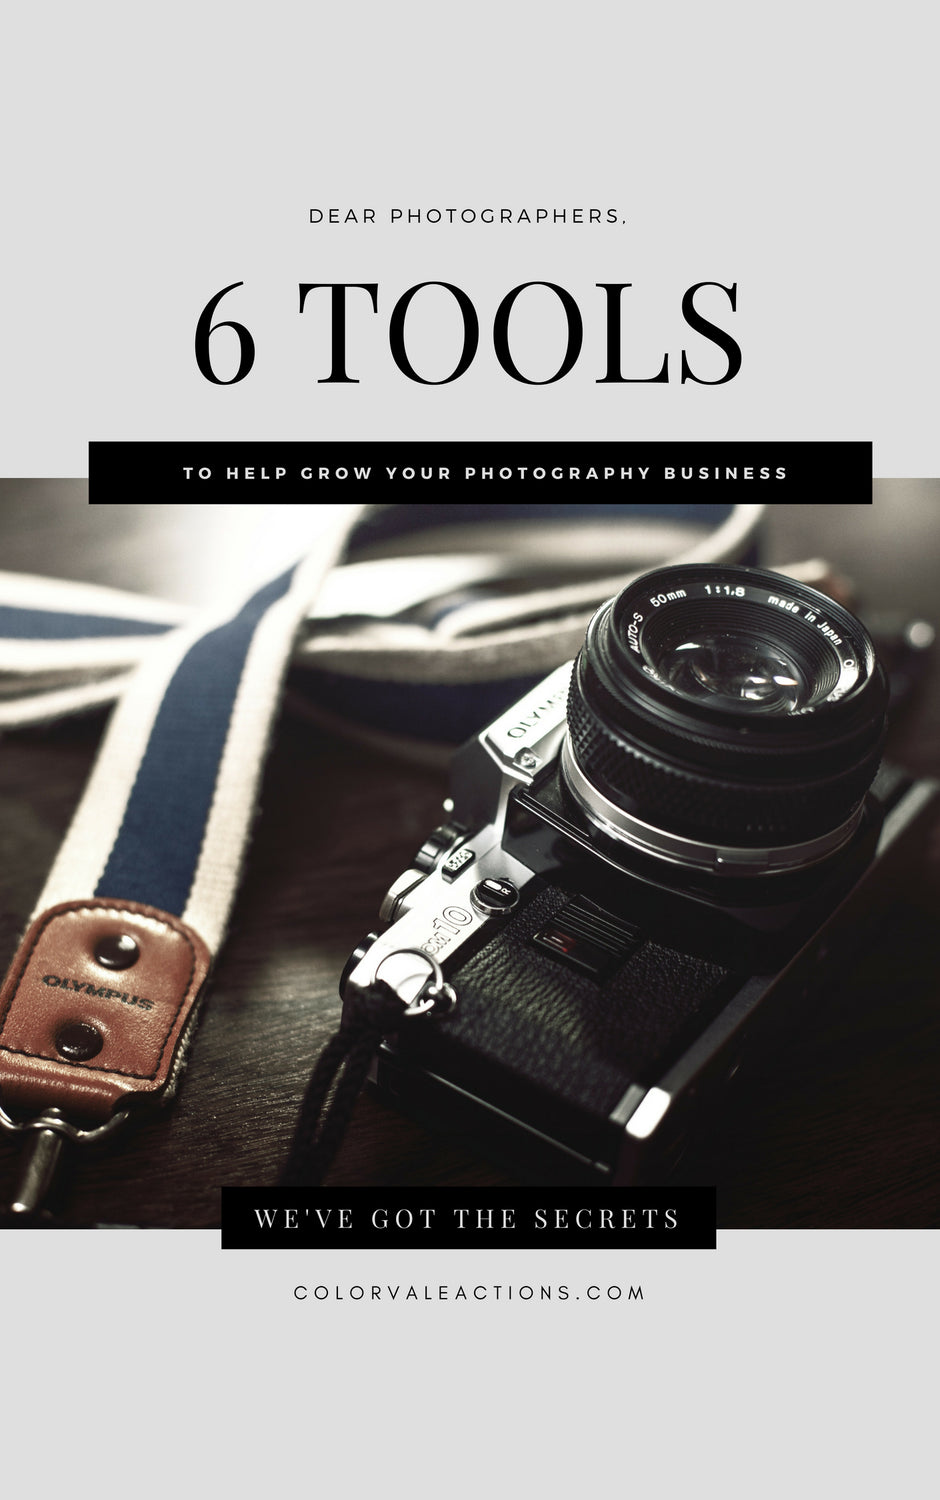 6 Tools To Help You Grow Your Photography Business